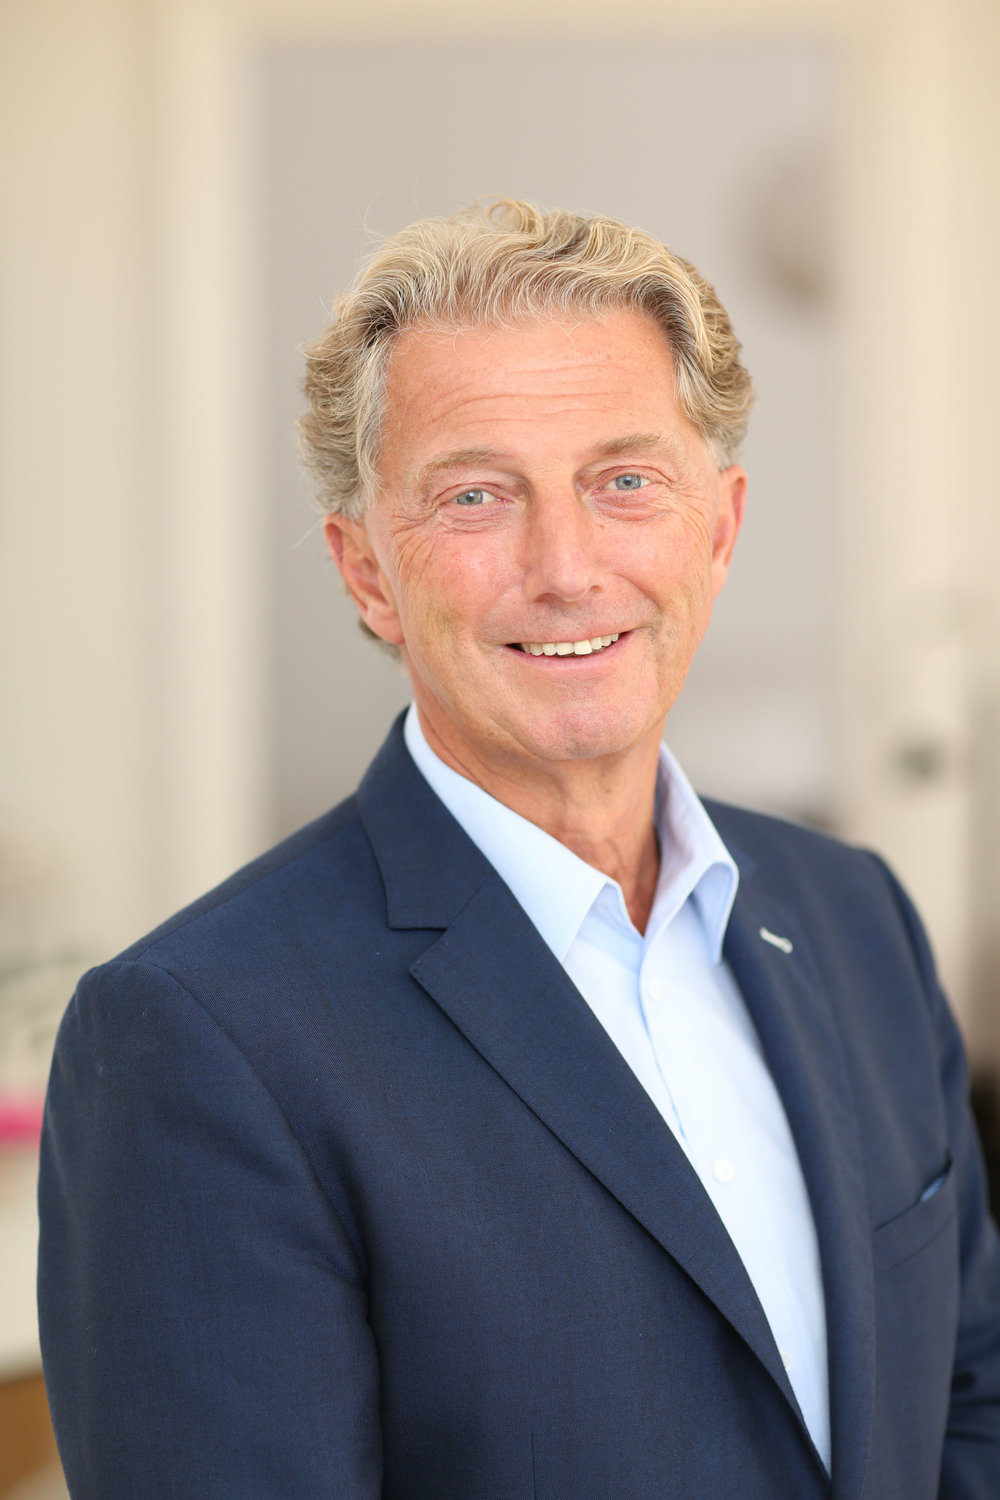 Mag. Martin Bergler, Co-CEO